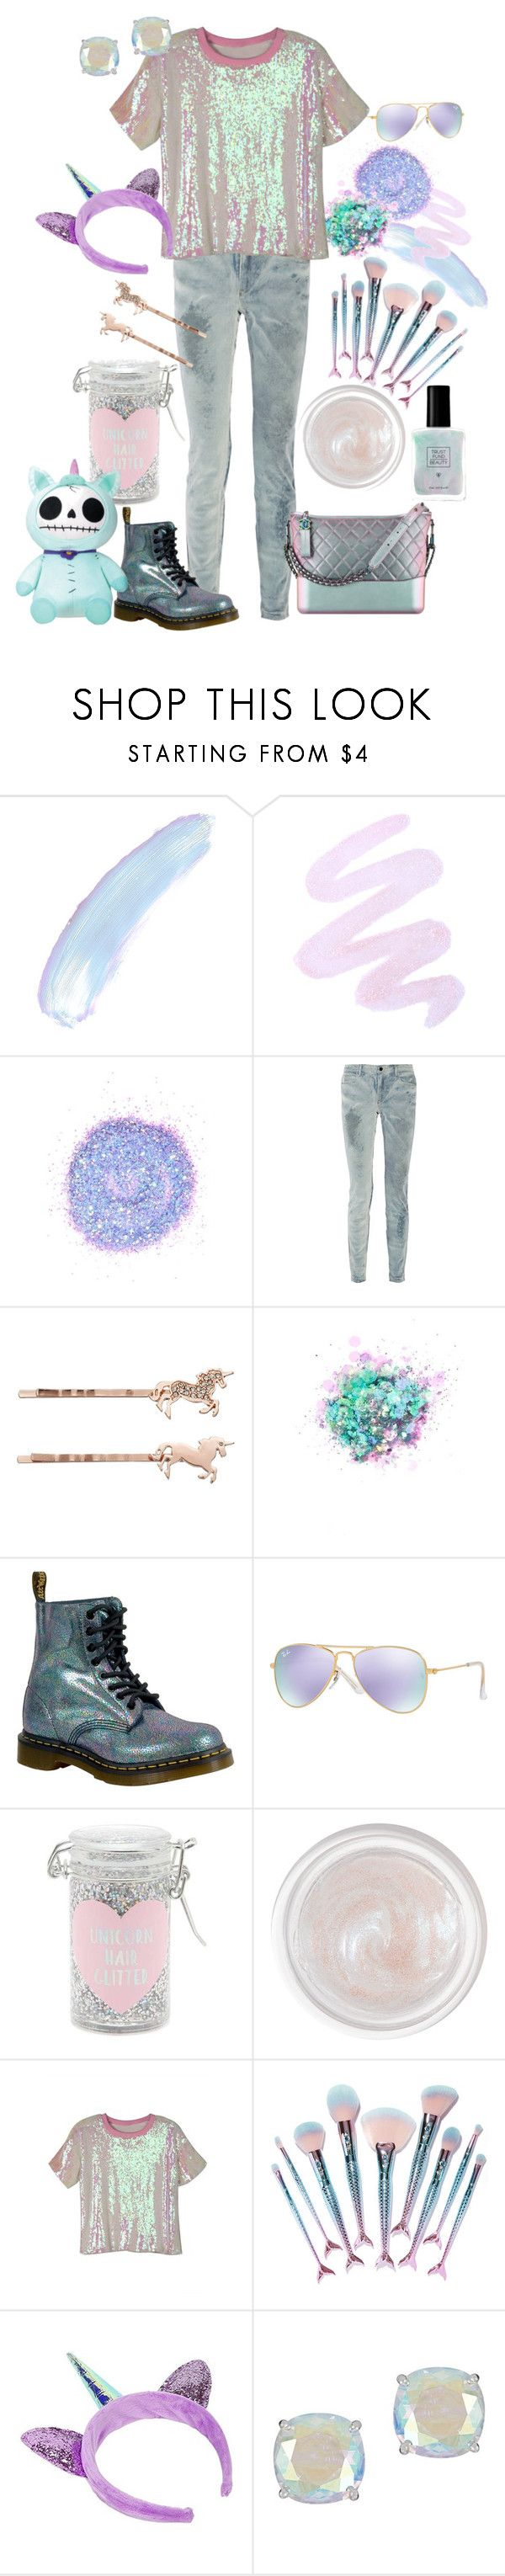 """""""You literally have NO reason not to be a unicorn."""" by millarca ❤ liked on Polyvore featuring Winky Lux, The Gypsy Shrine, Alexander Wang, LC Lauren Conrad, Chanel, Dr. Martens, Ray-Ban, Forever 21, Pat McGrath and WithChic"""